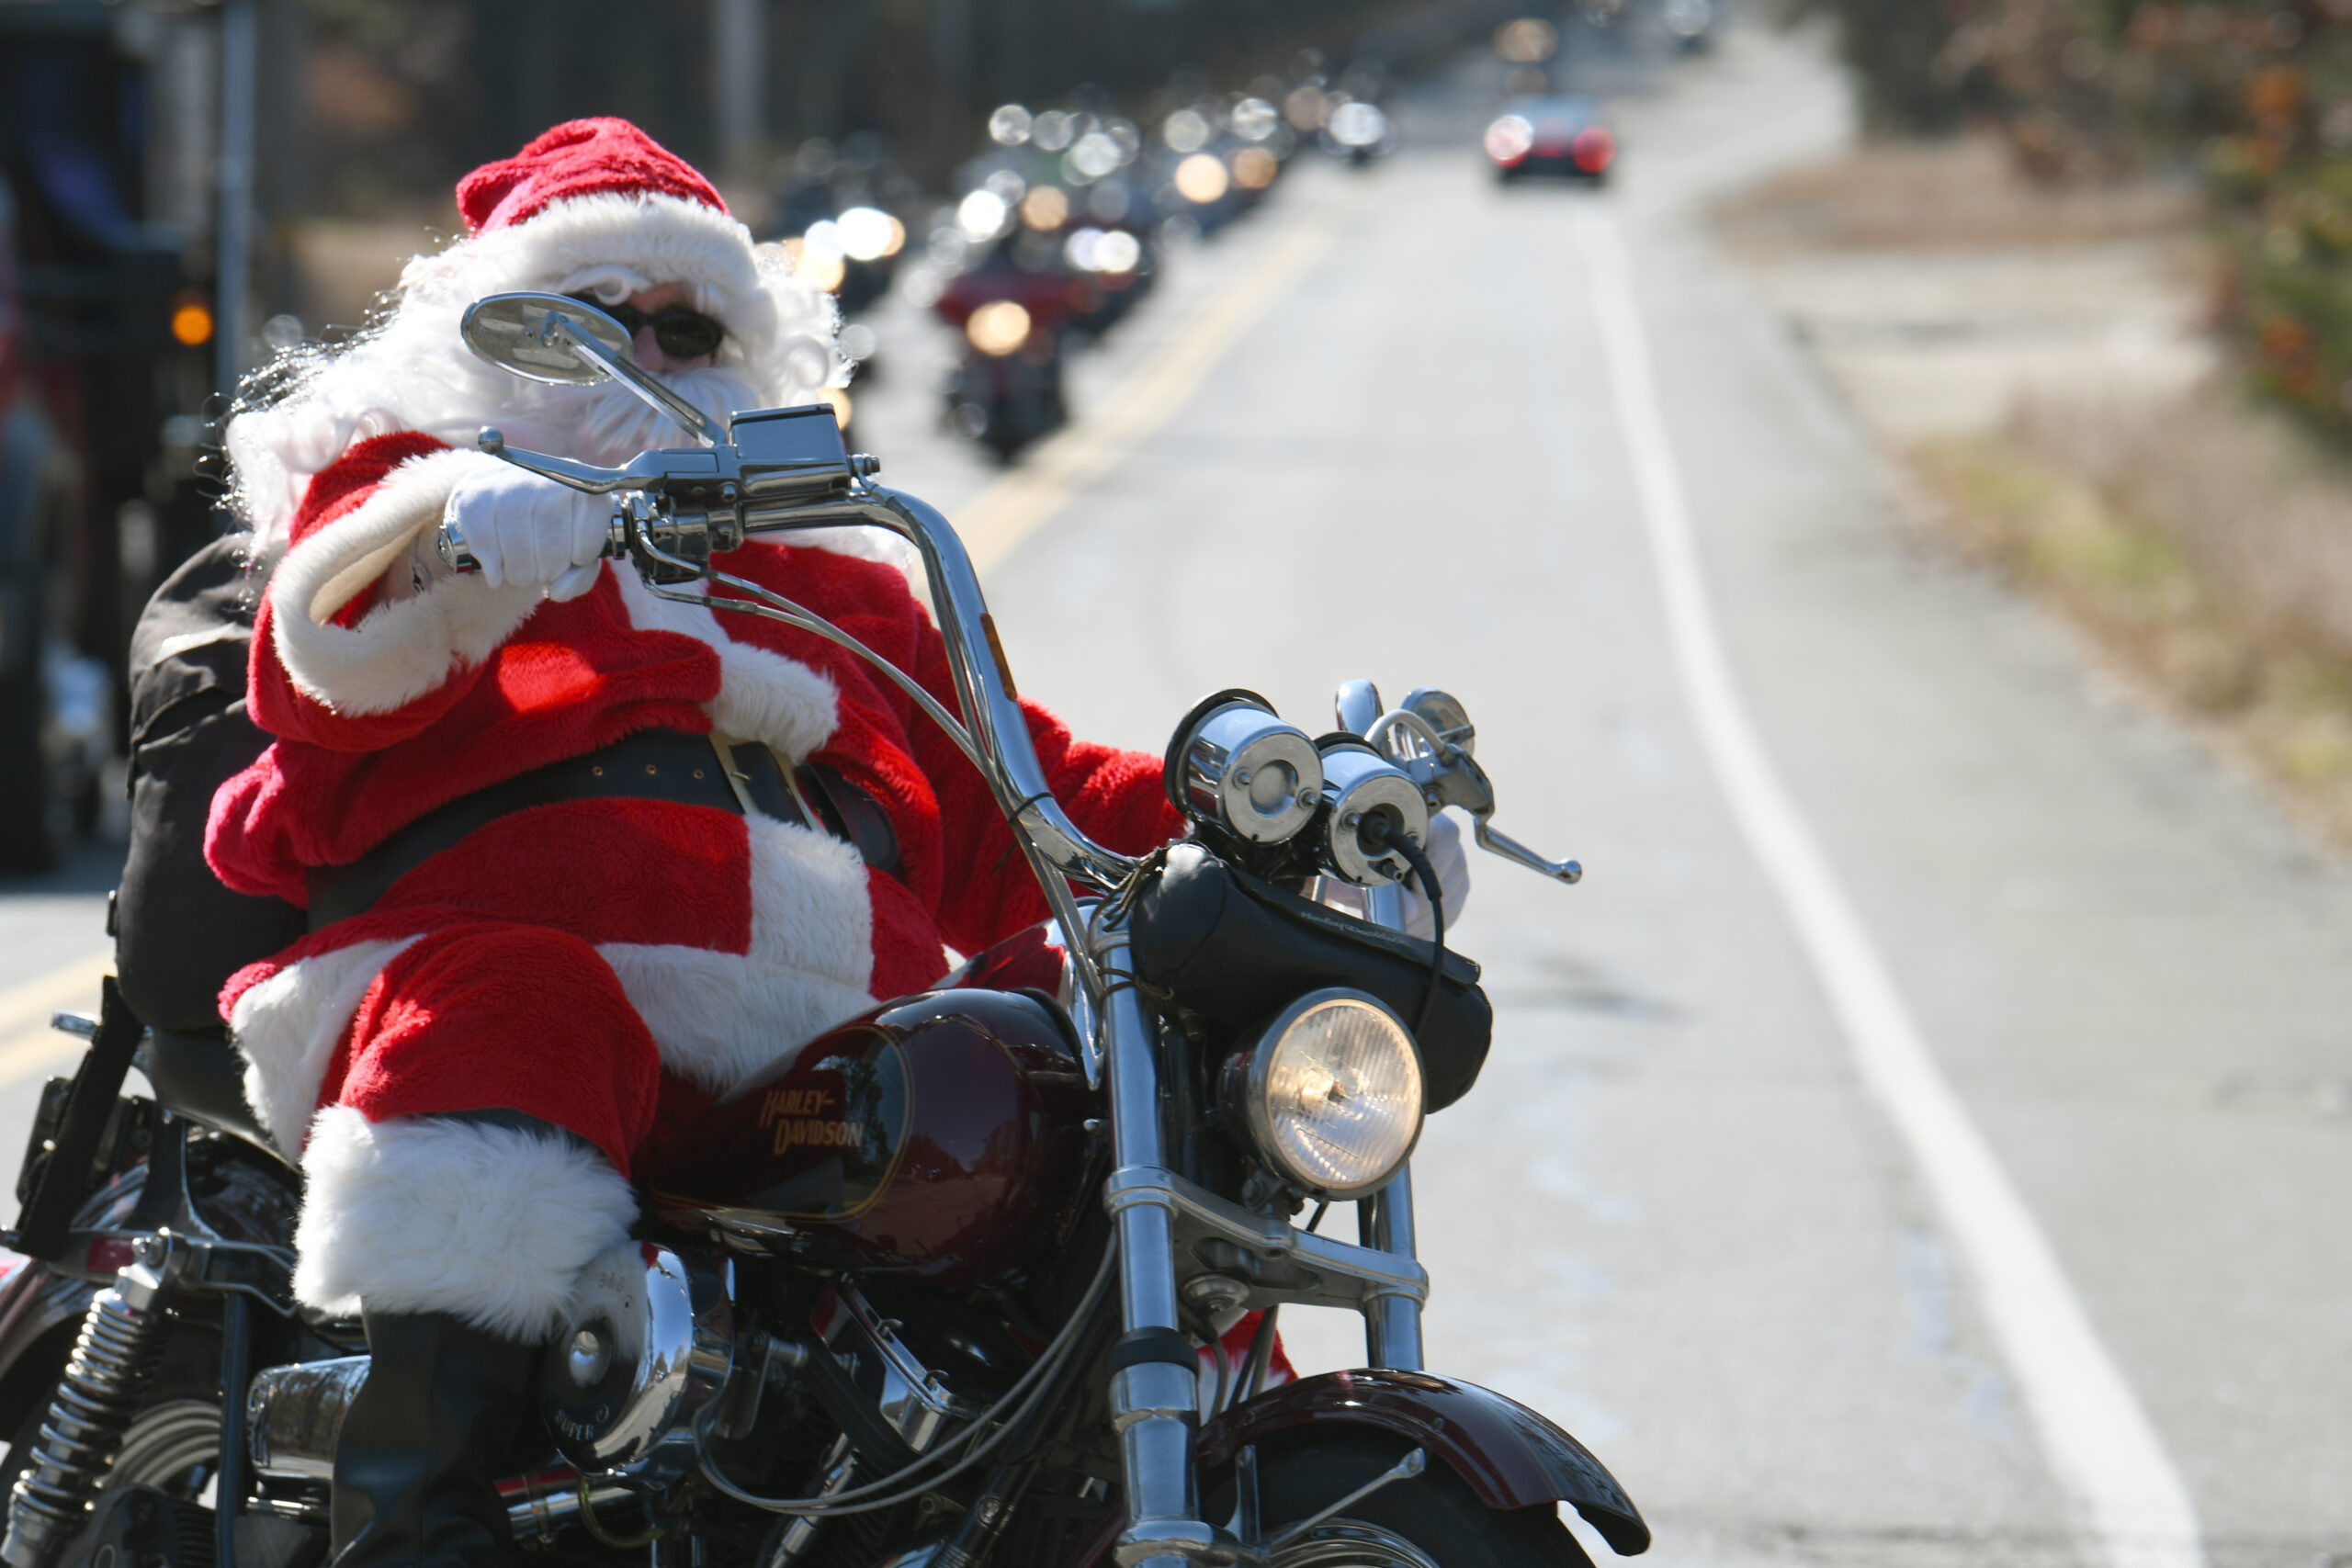 Santa leading the 20th Annual Chris Wetherbee Memorial Toy Run.